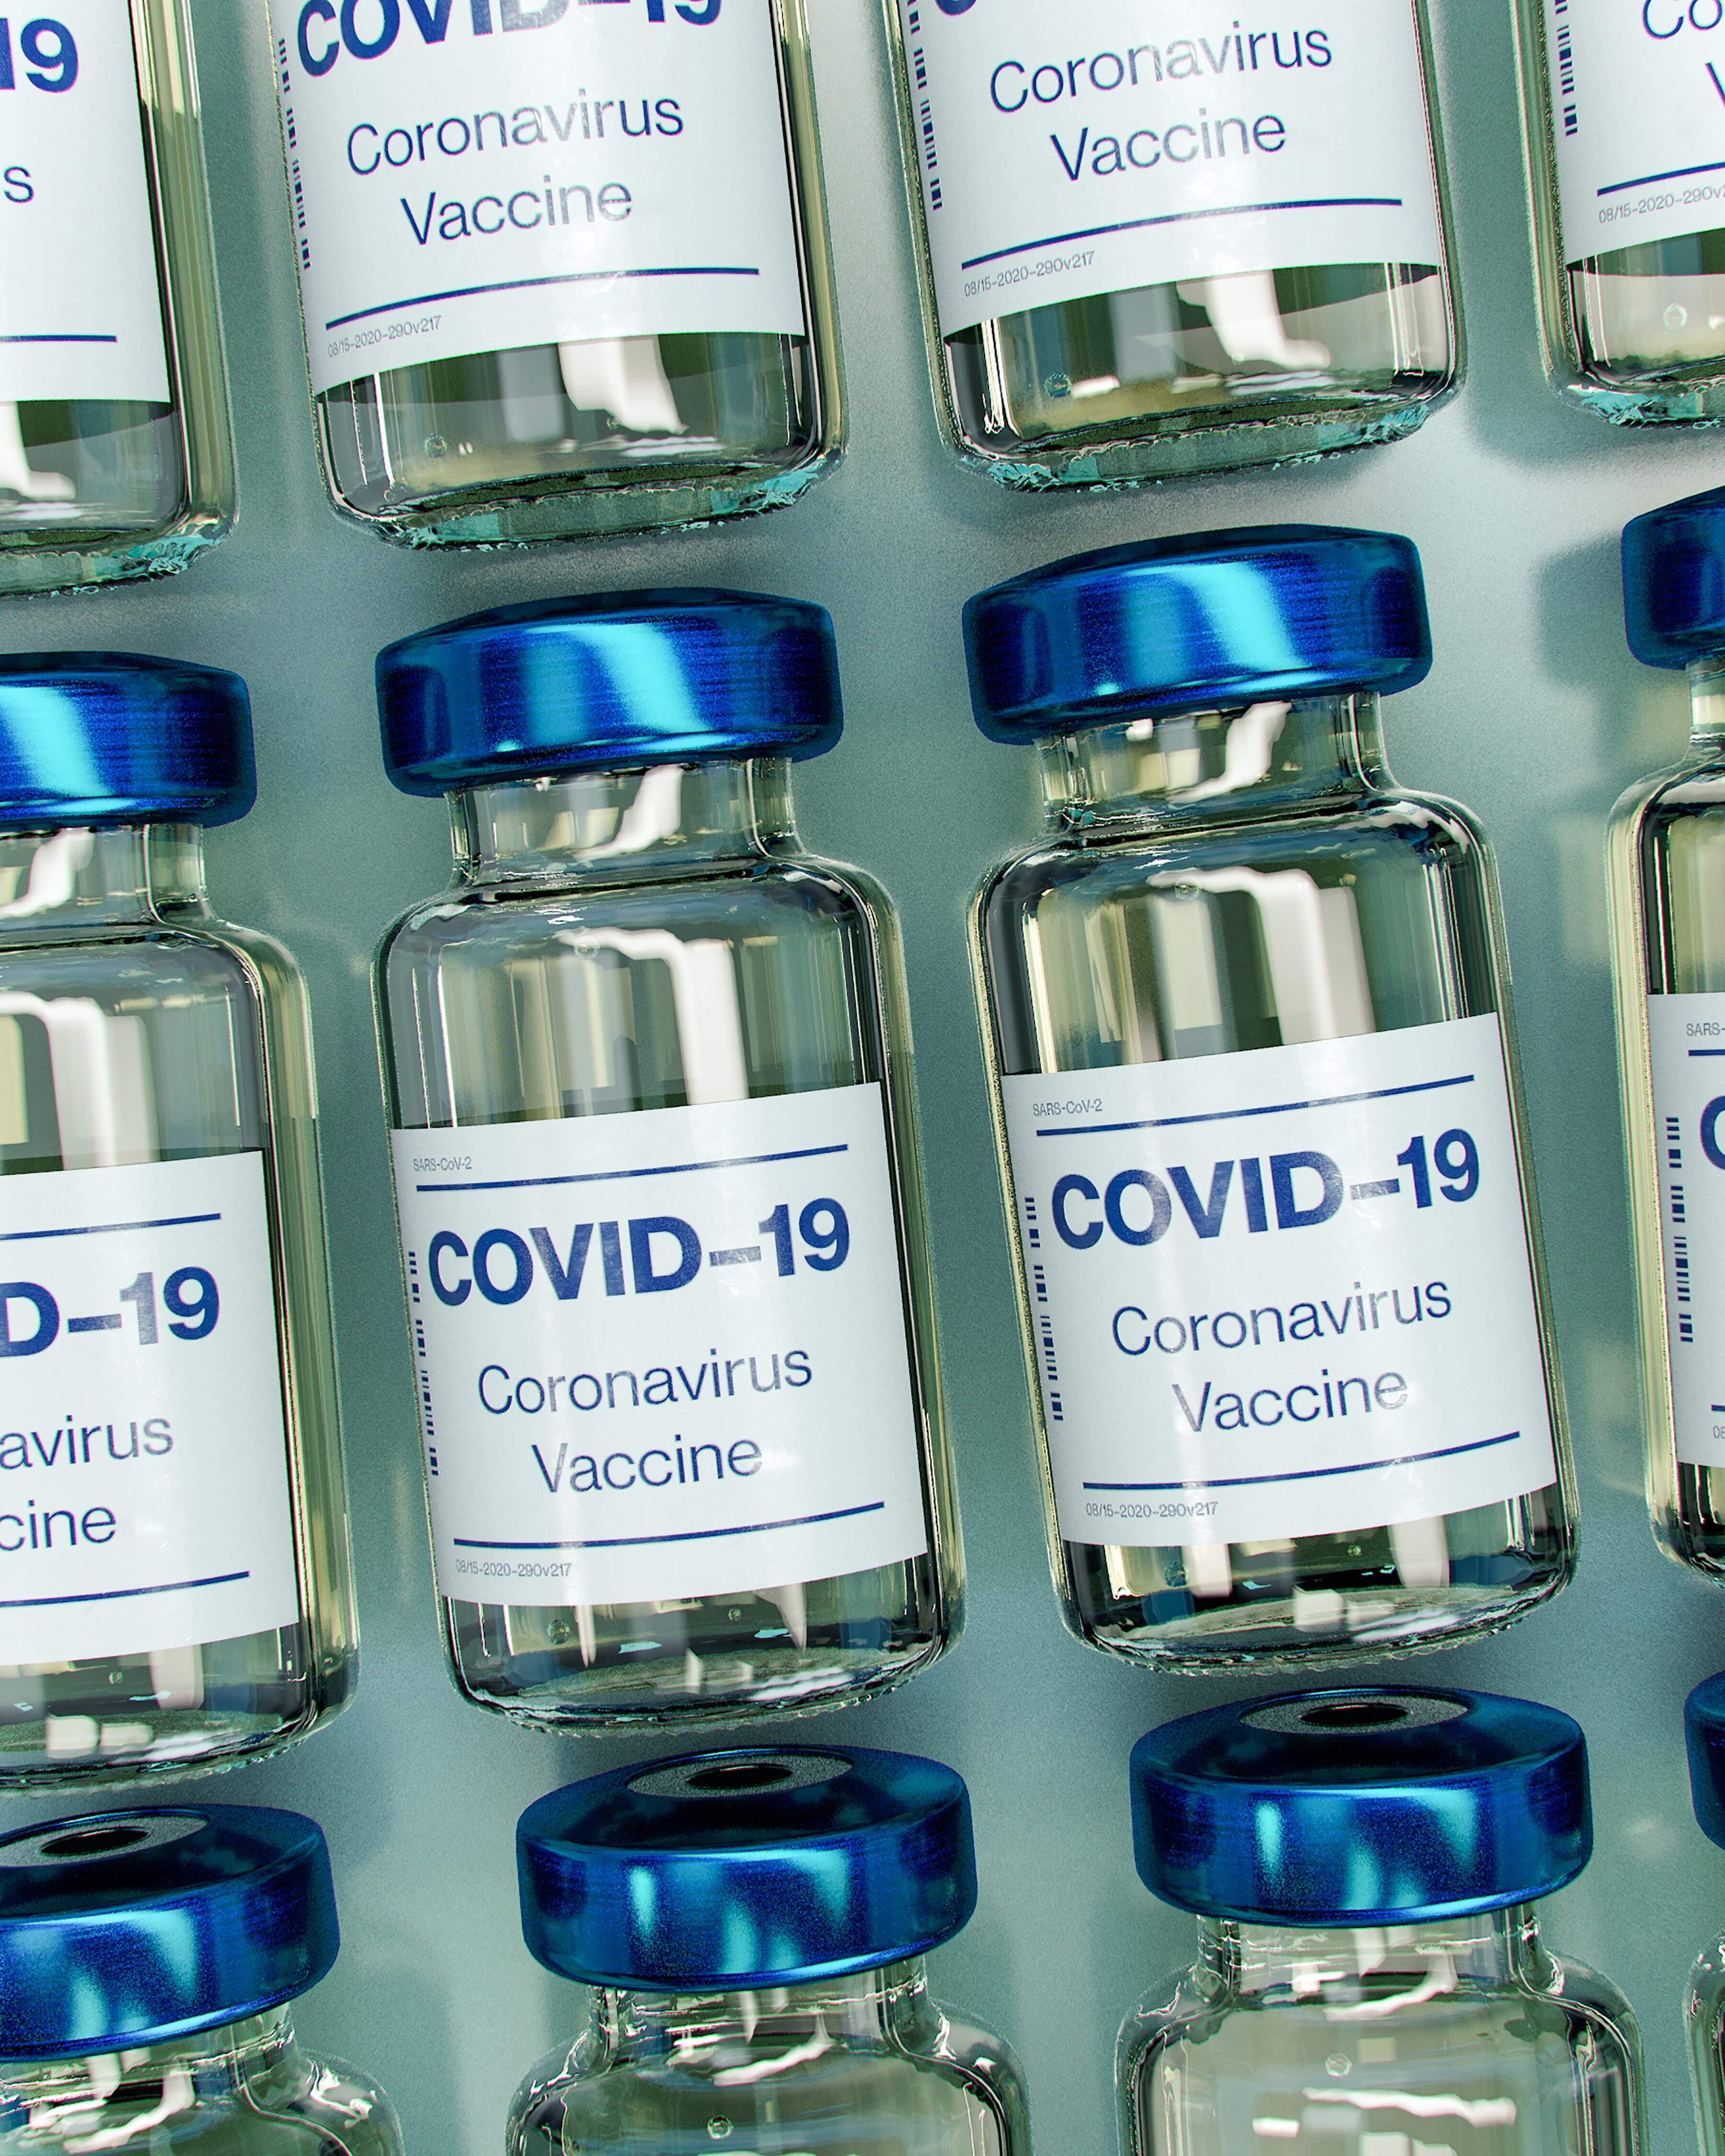 Can we make the COVID-19 vaccine compulsory in our workplace?